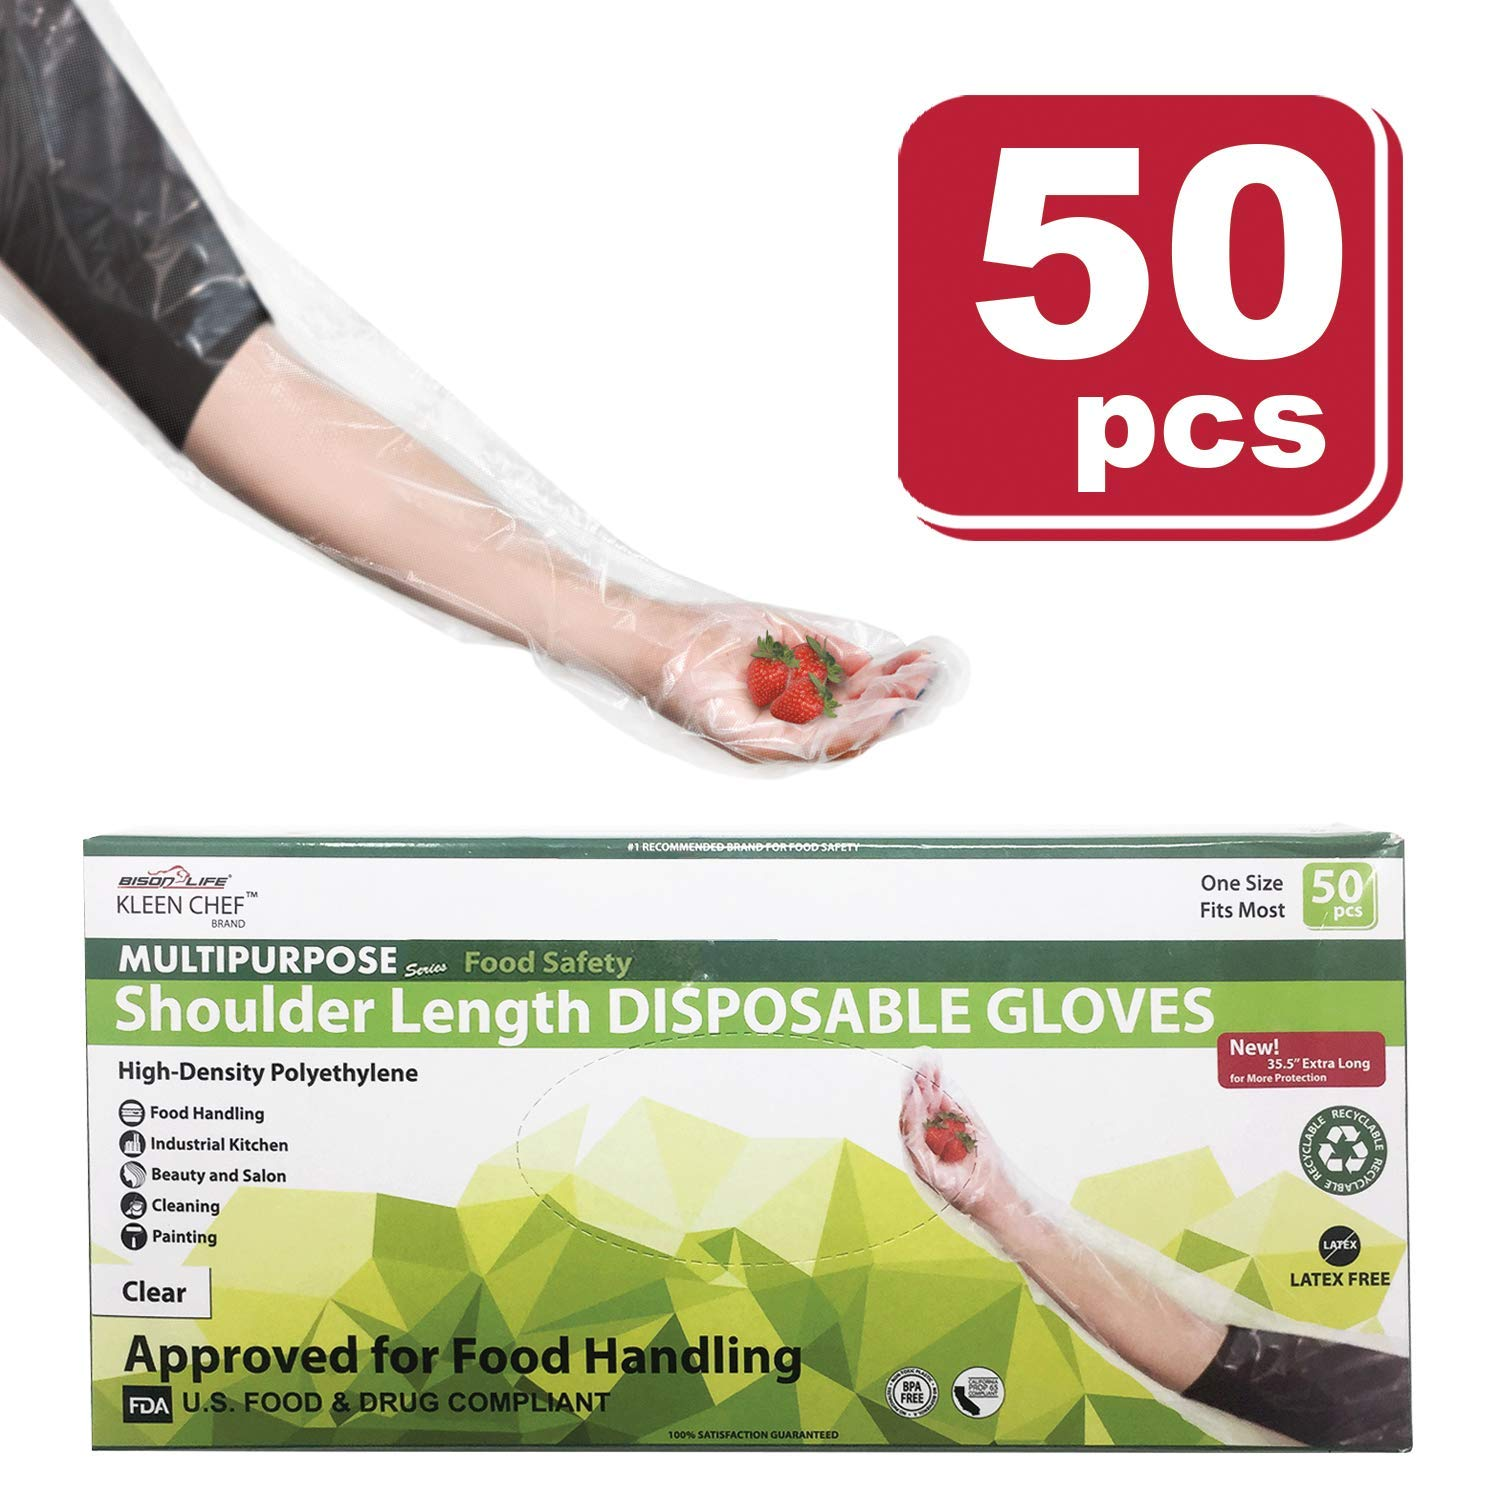 Disposable Food Handling Shoulder Length Poly Gloves - One Size Fits Most, 50 per box (1 box) by KLEEN CHEF (Image #5)